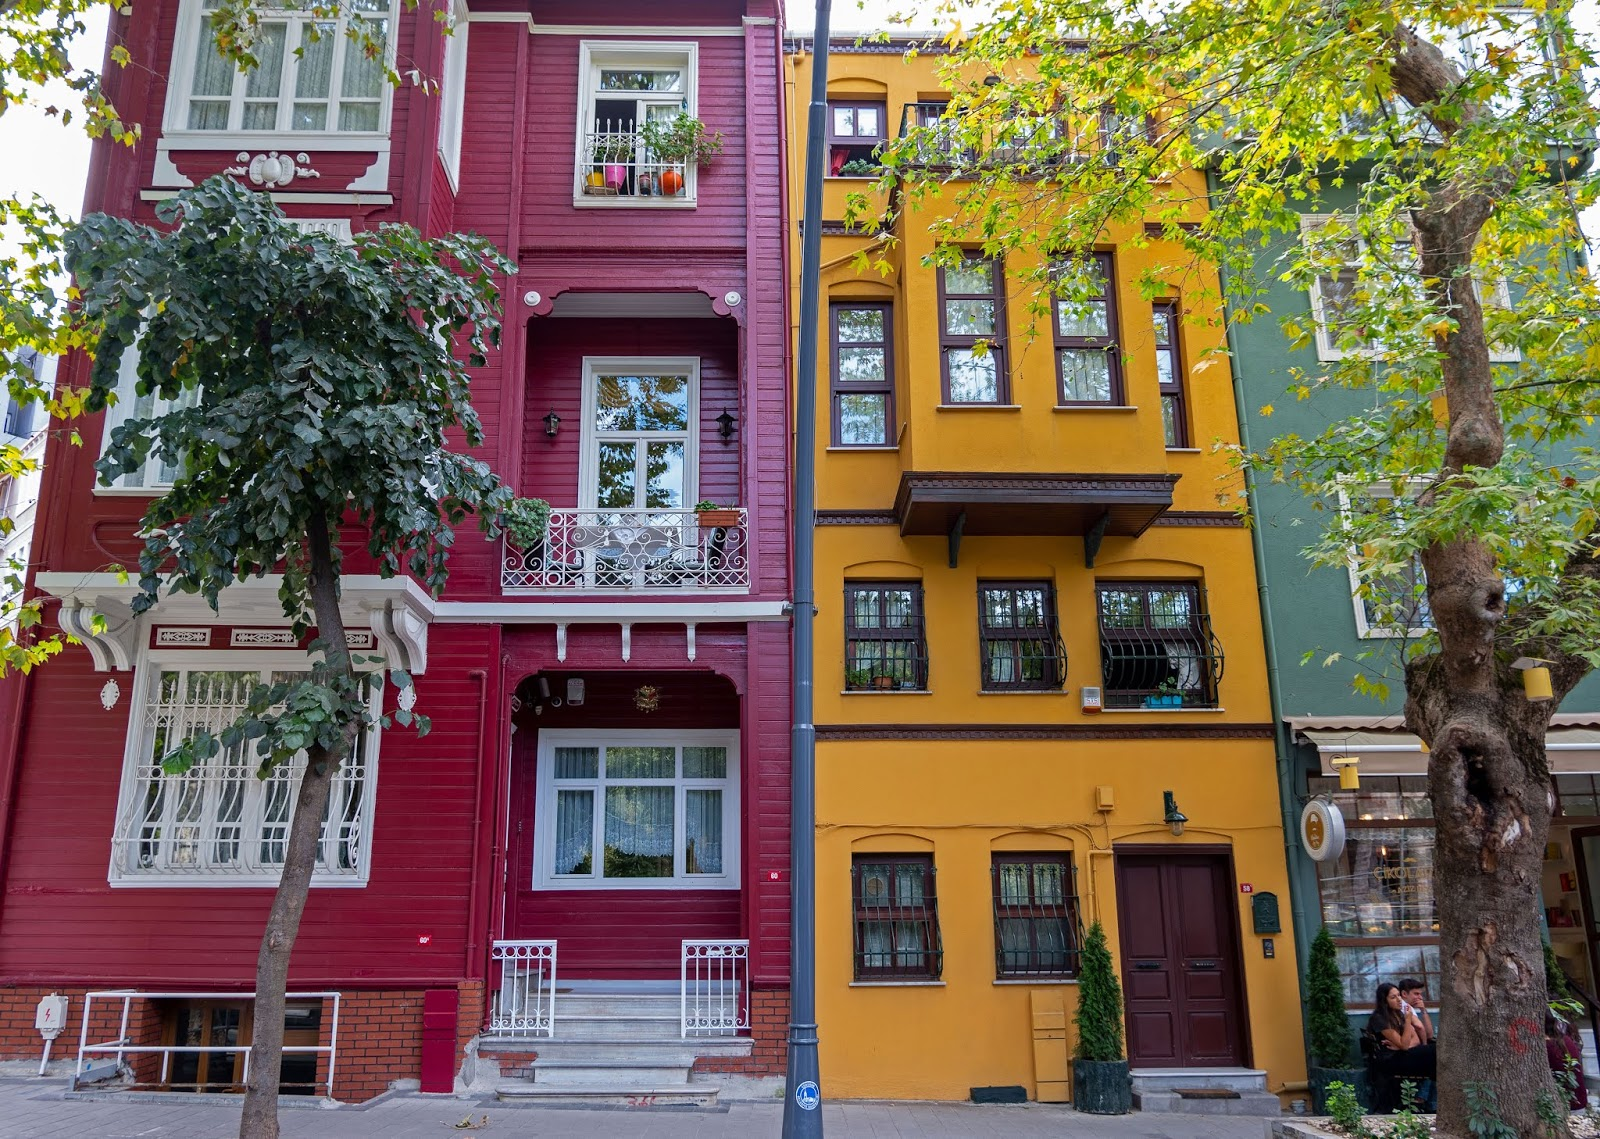 Visiting the Kuzguncuk neighbourhood on the Asian side of Istanbul